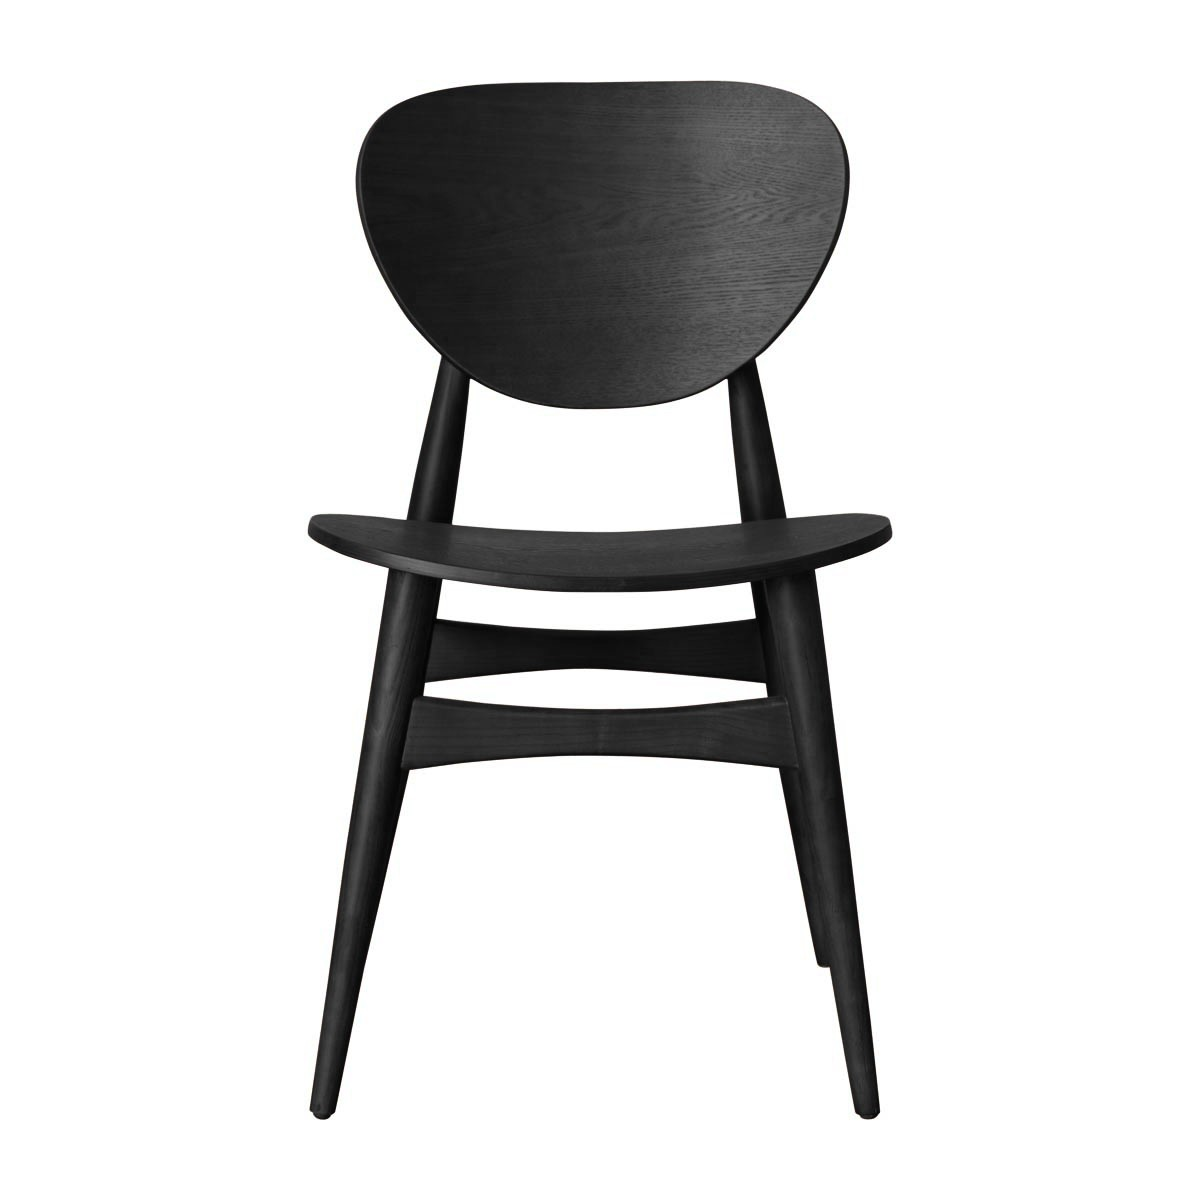 black dining chairs life interiors - potter timber dining chair (black) - modern dining HEPINQP